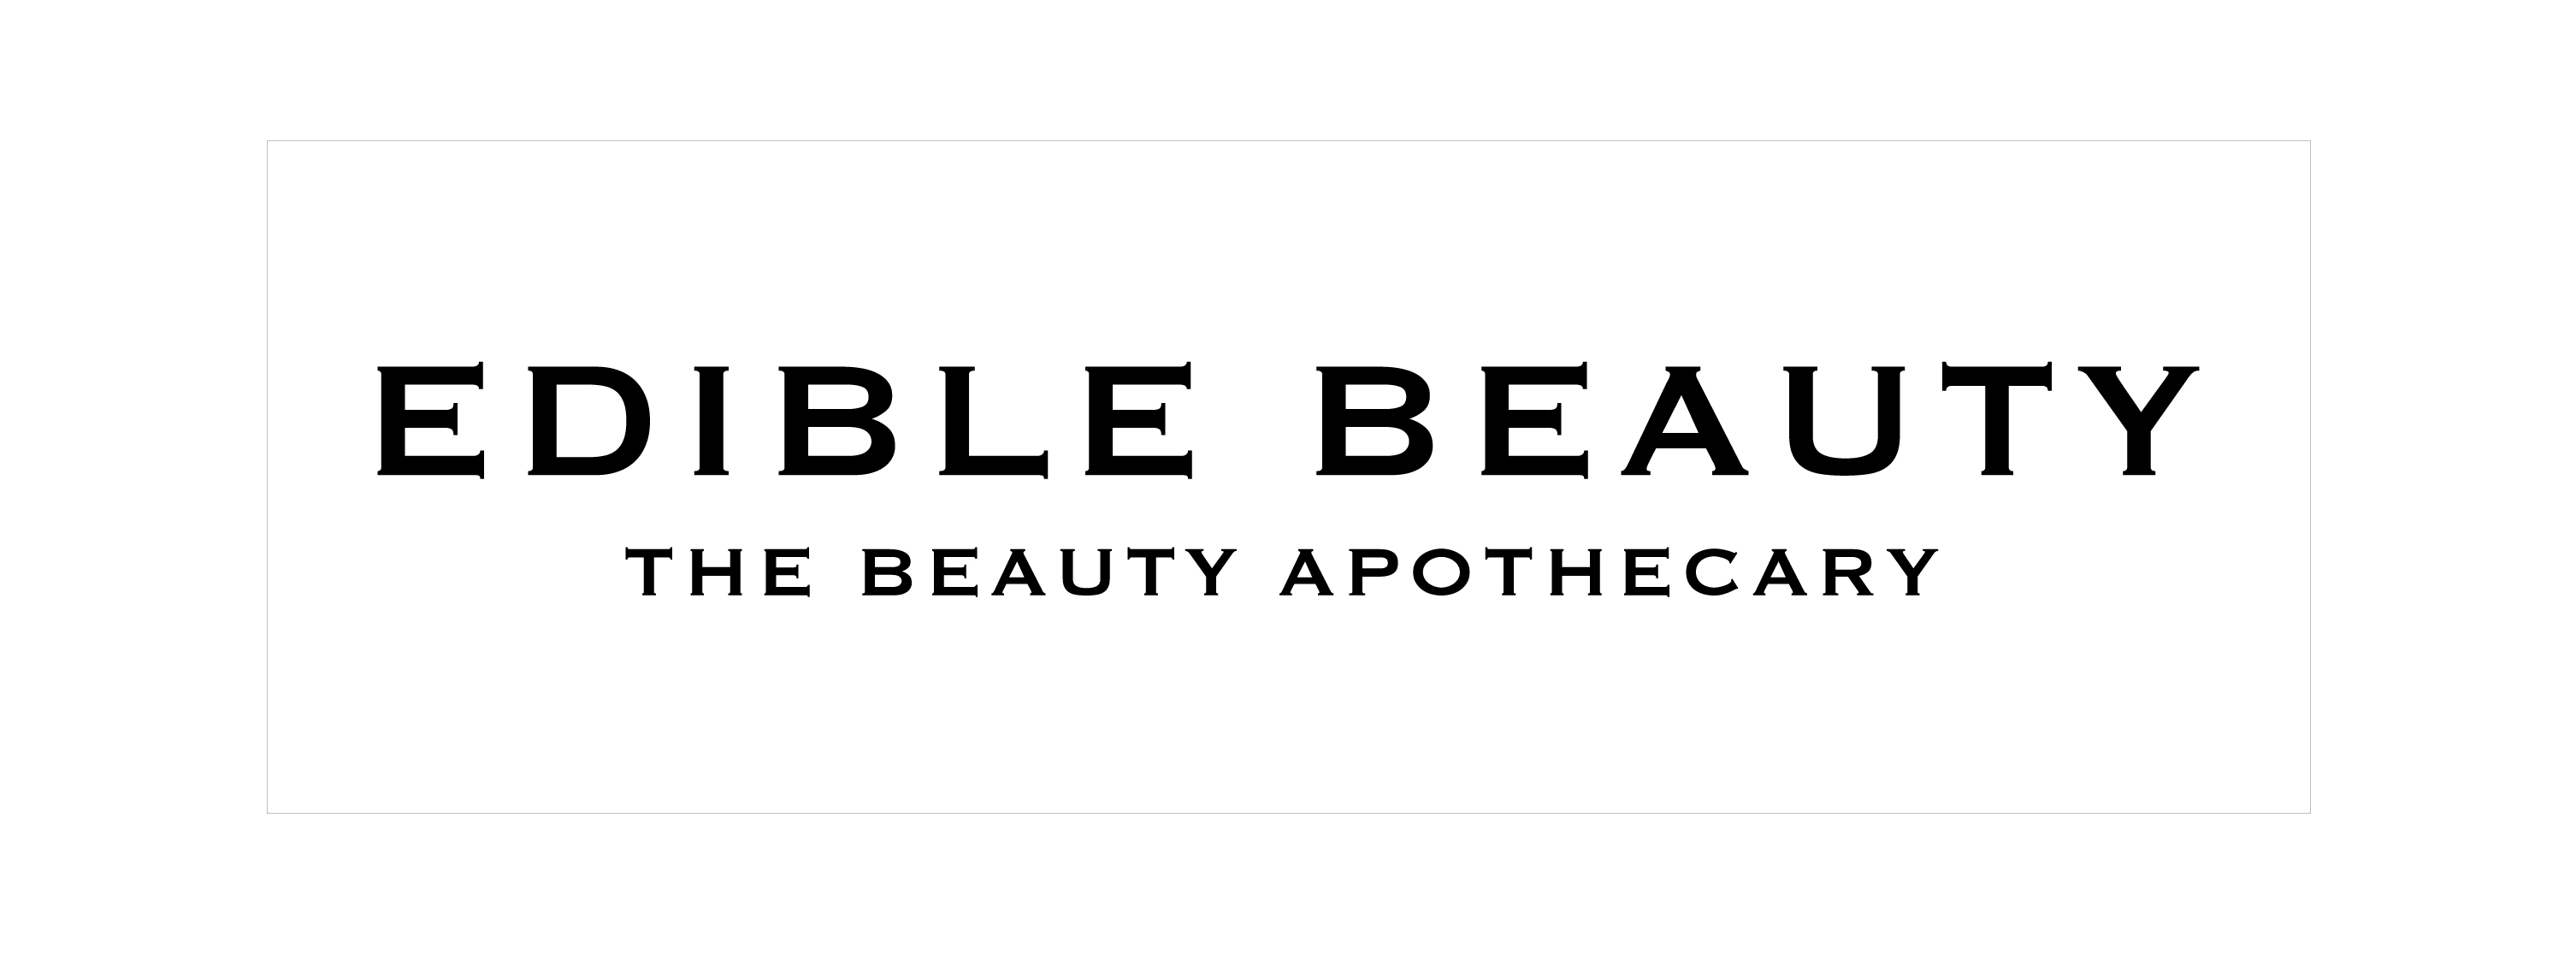 The Beauty Apothecary